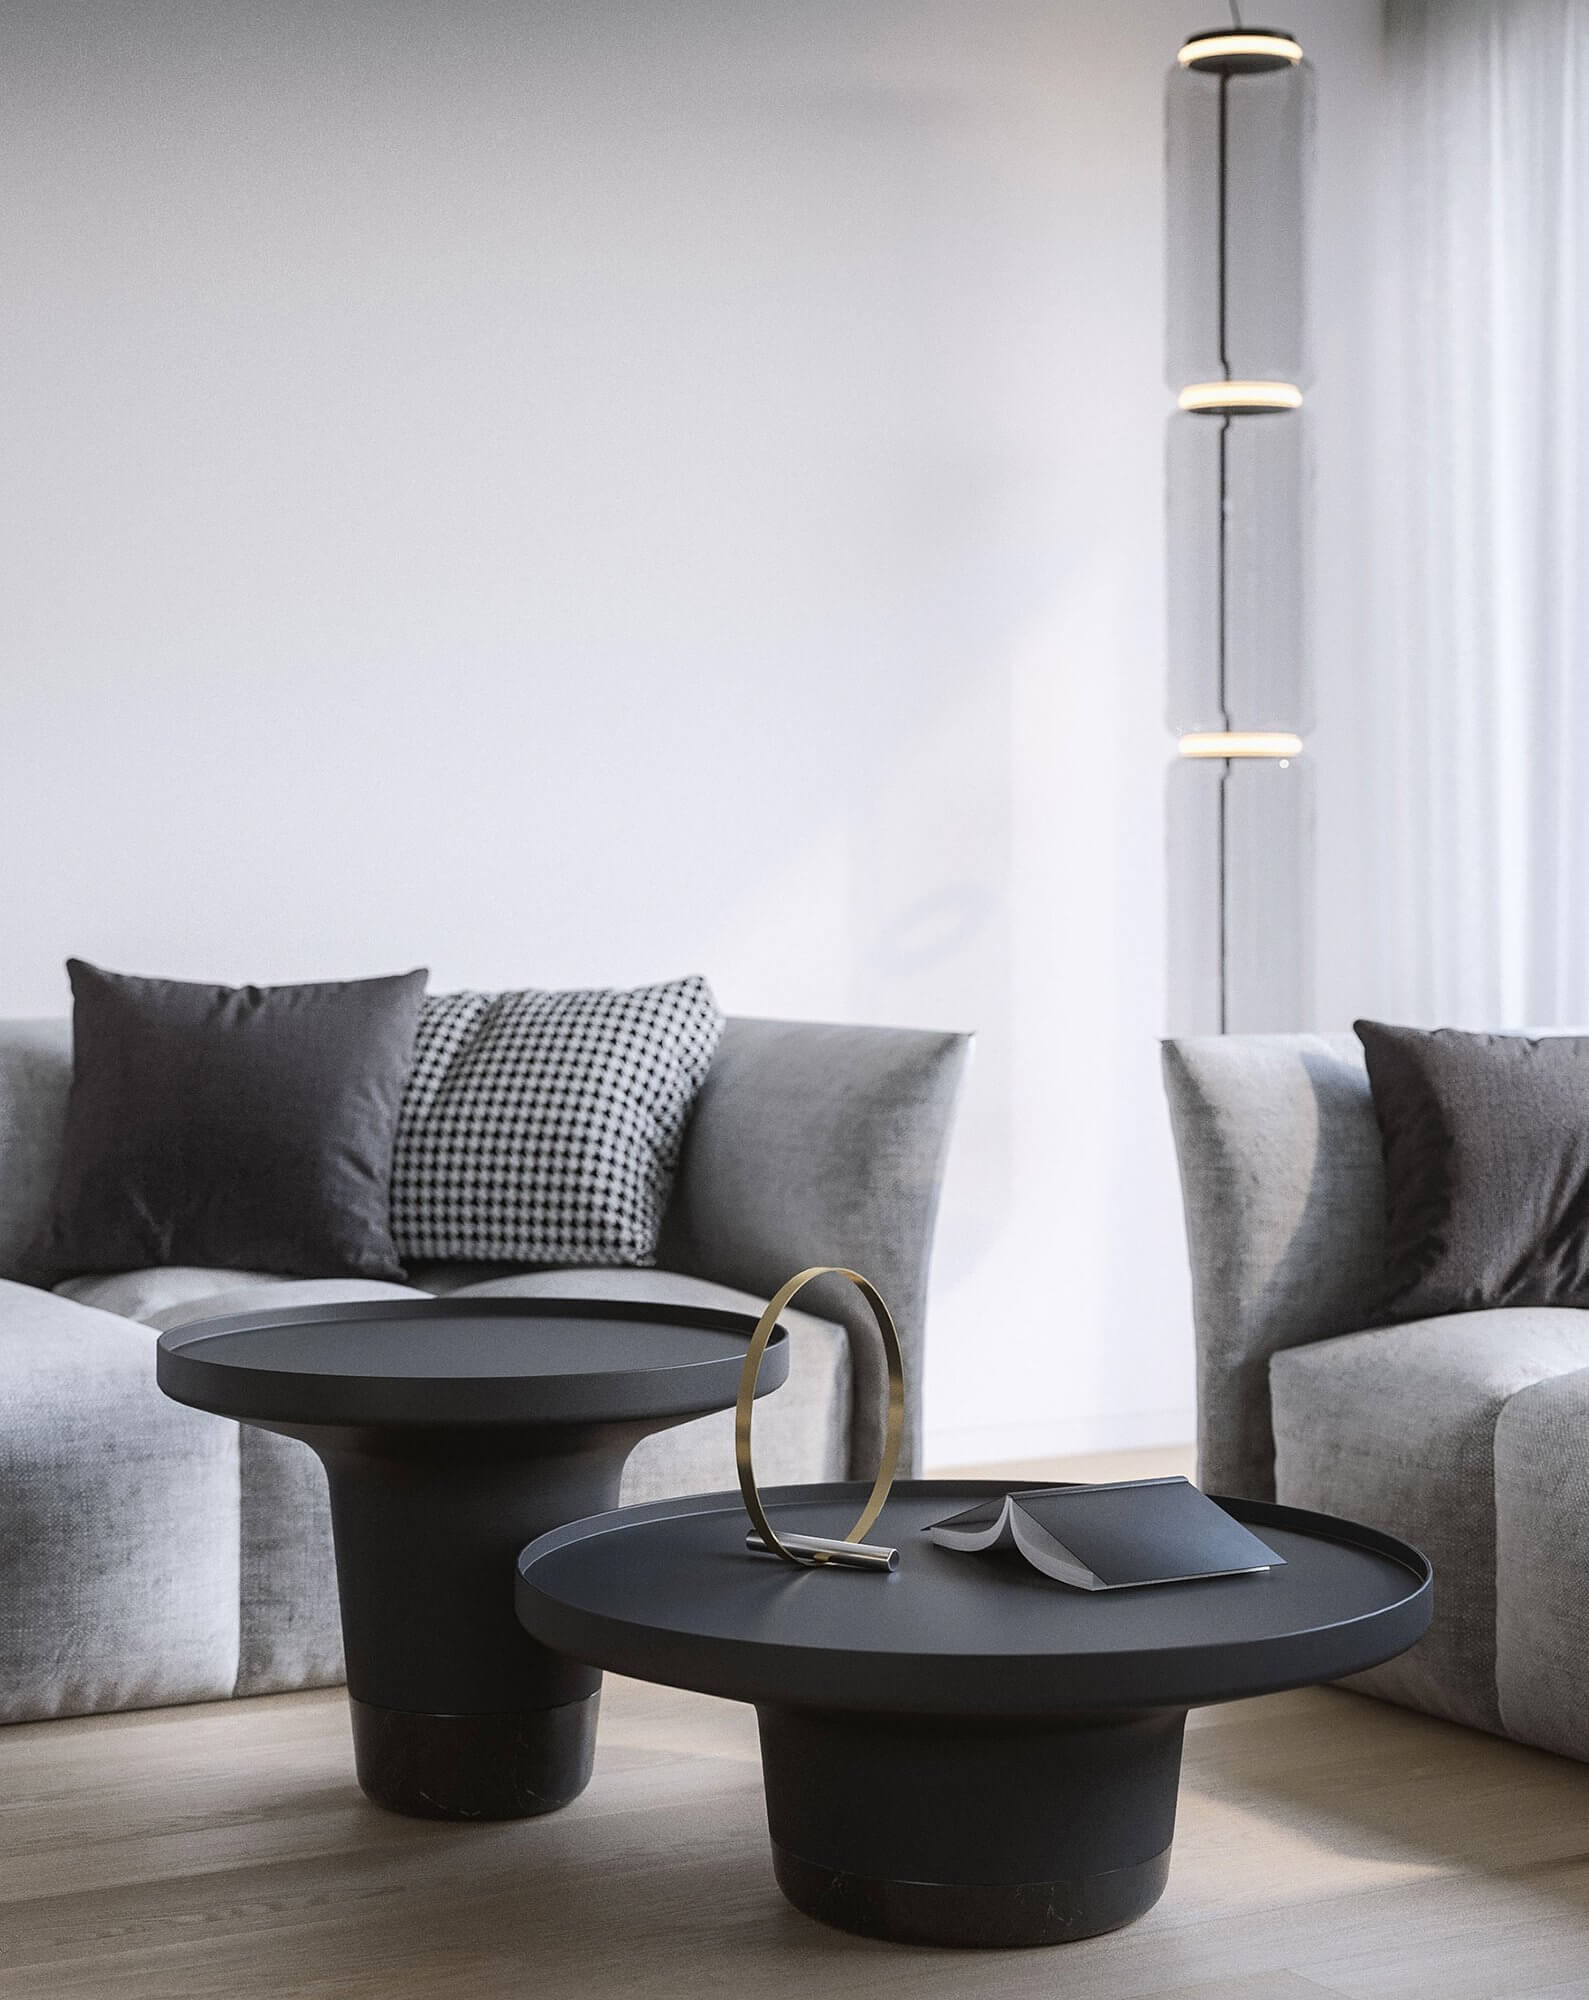 Suprematic Simplicity Apartment living room side table metal - cgi visualization